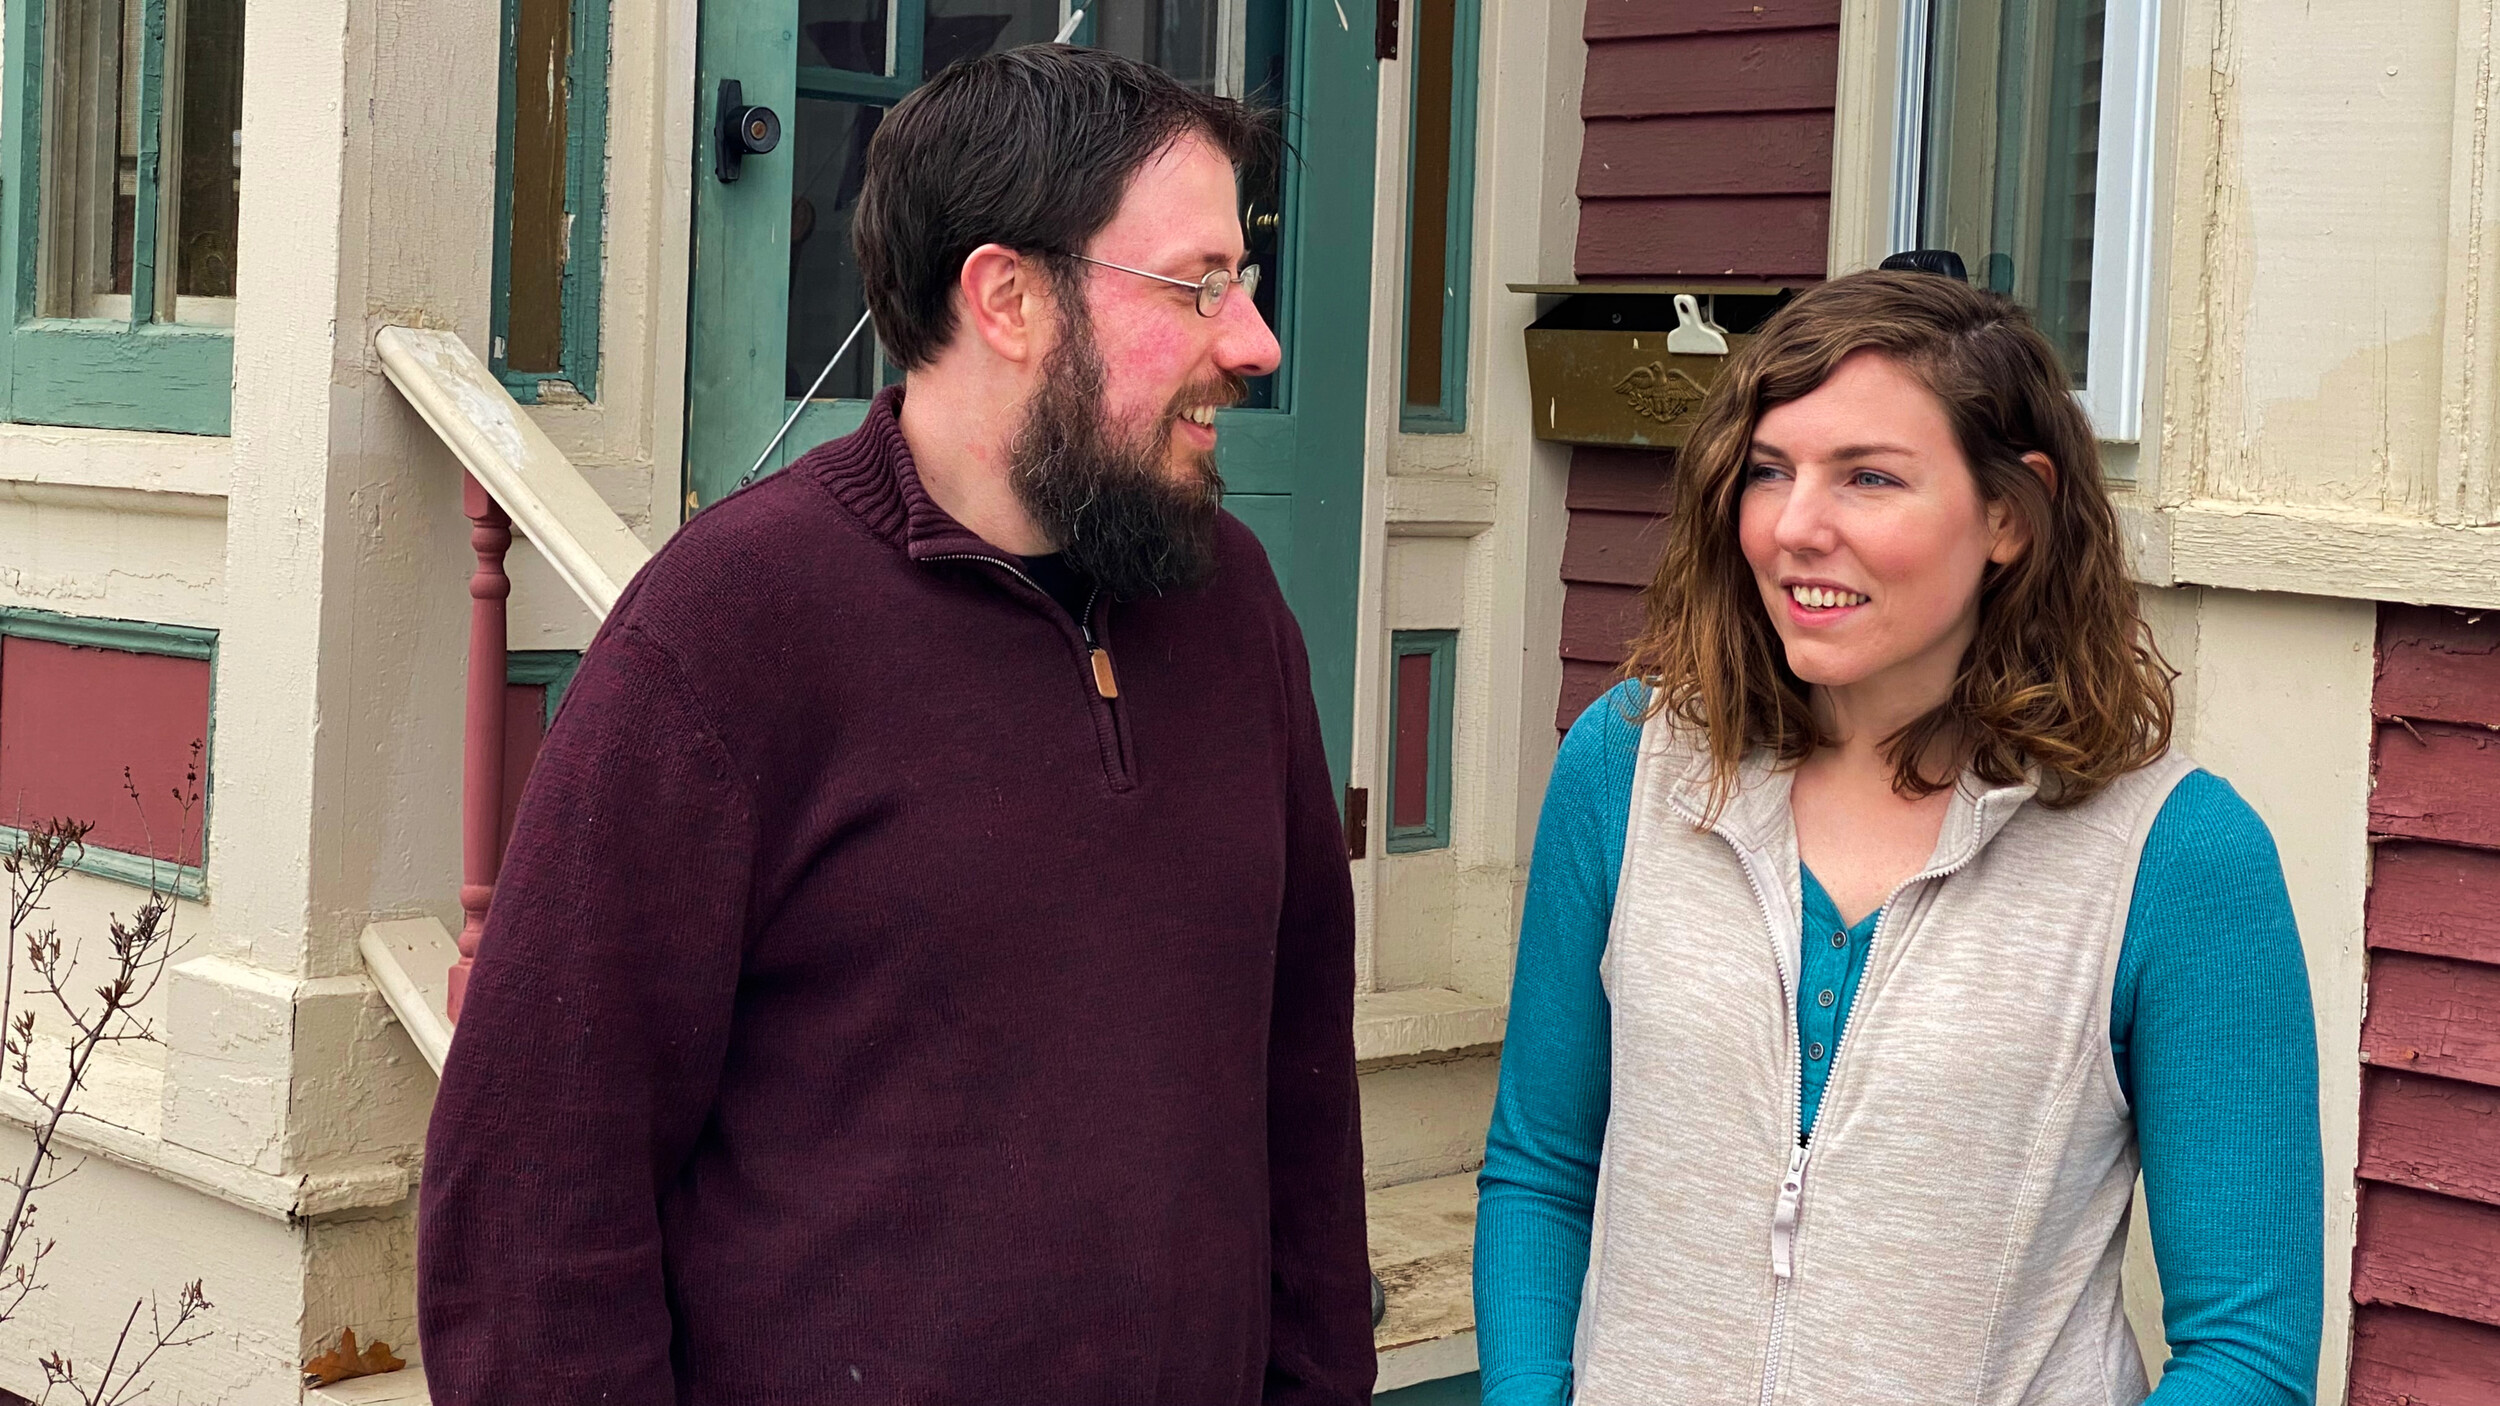 Rural Maine is seeing an influx of homebuyers during pandemic - Bangor Daily News